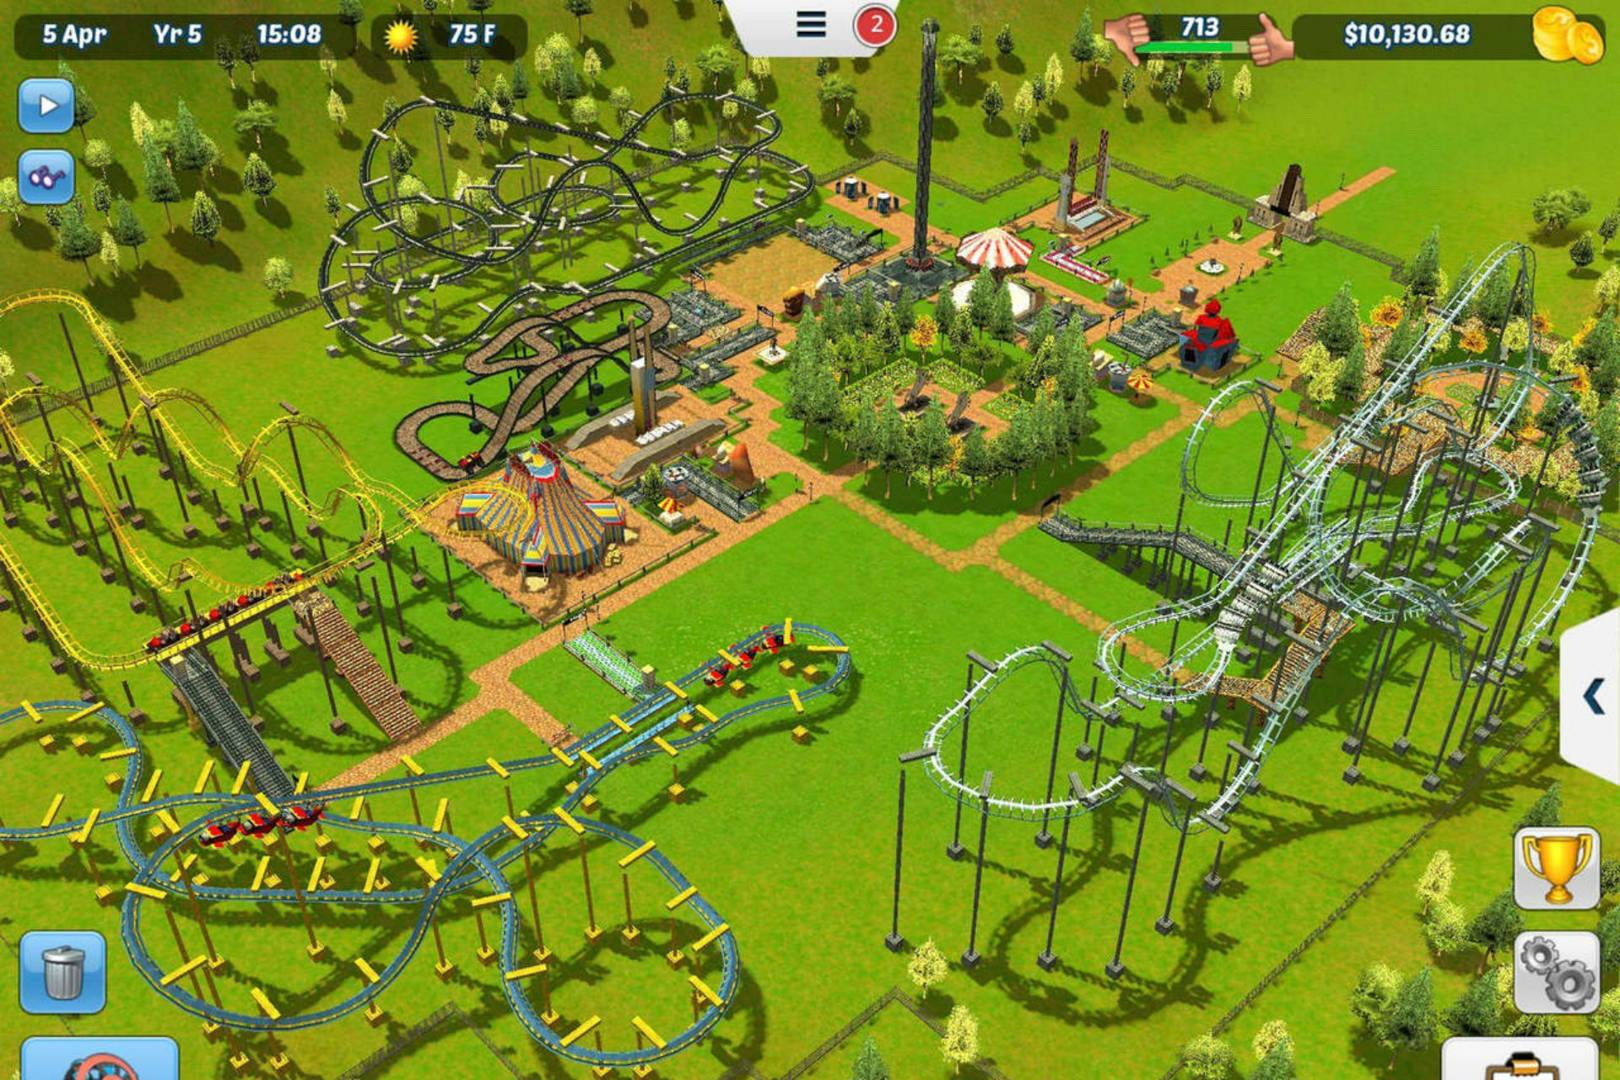 RollerCoaster Tycoon 3 comes to App Store without IAPs